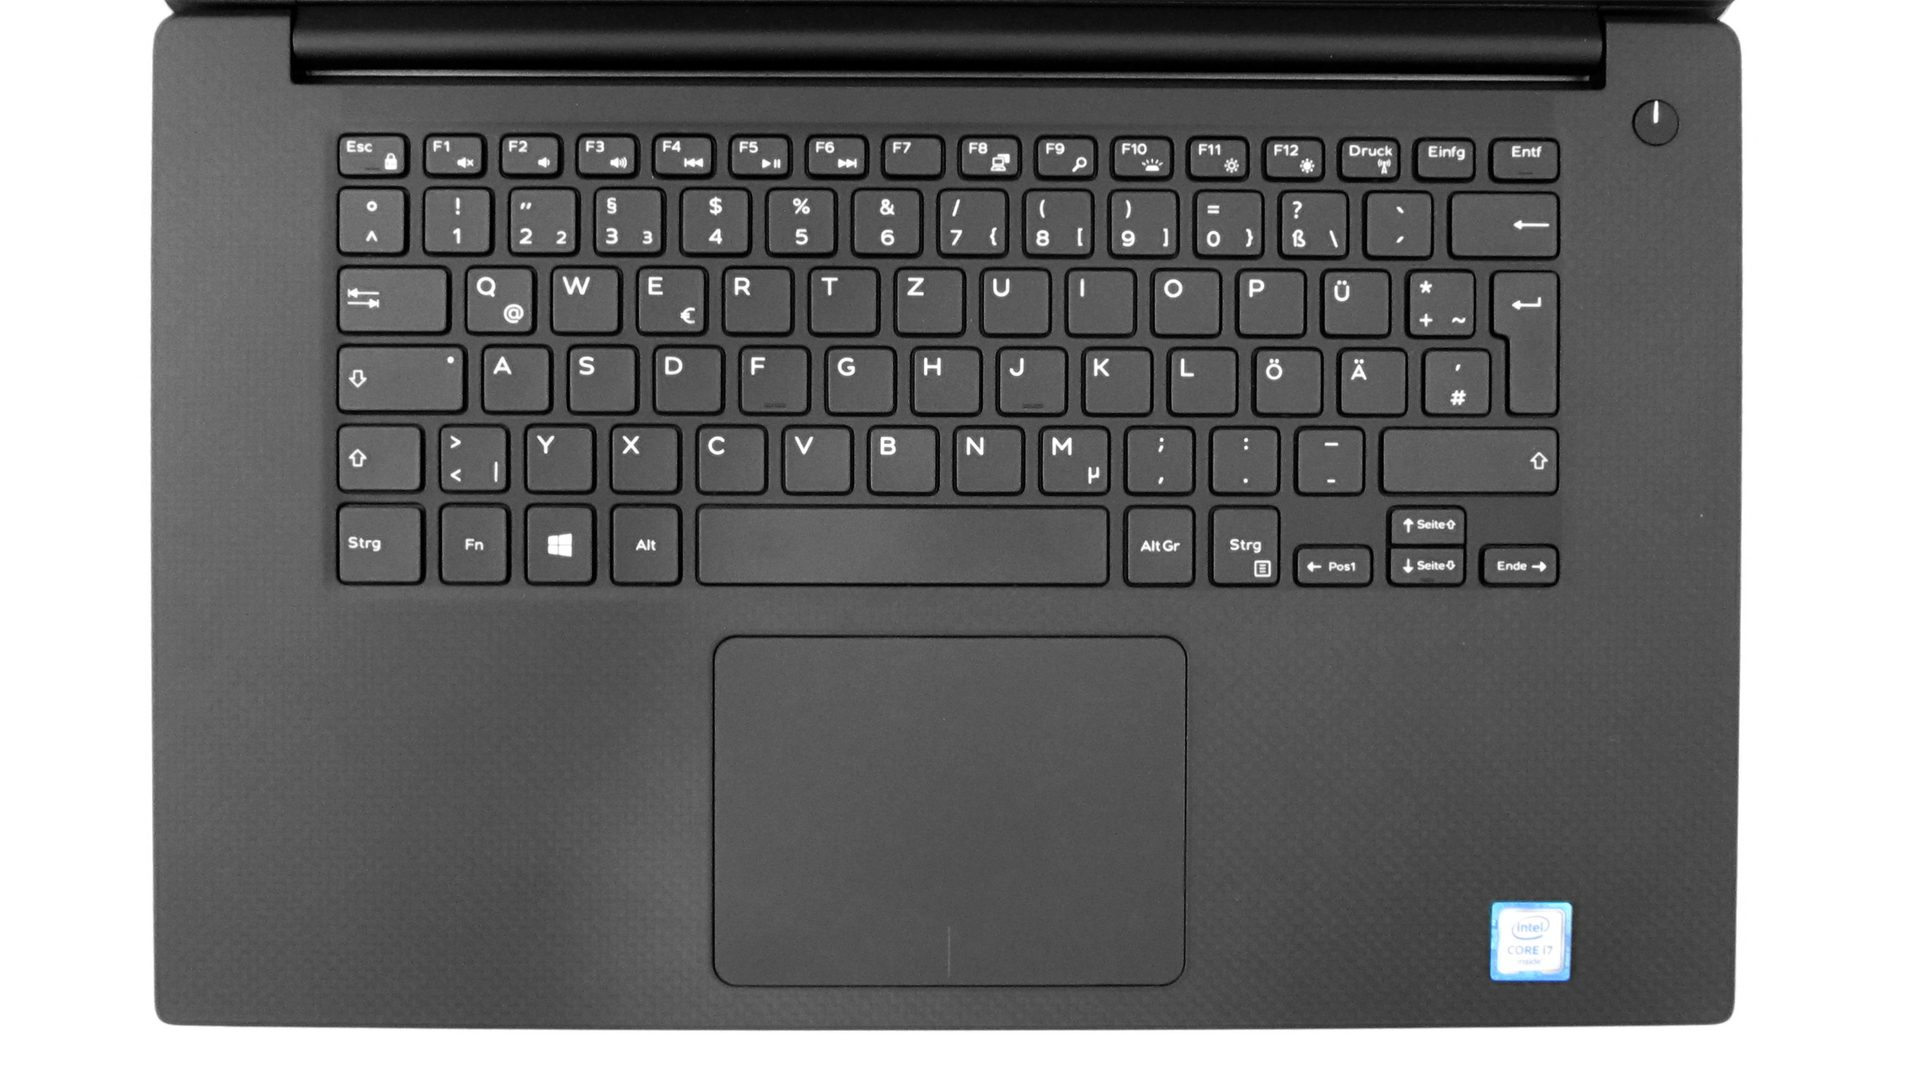 Dell-XPS-15-9550-3813-Ultrabook-Tastatur_4